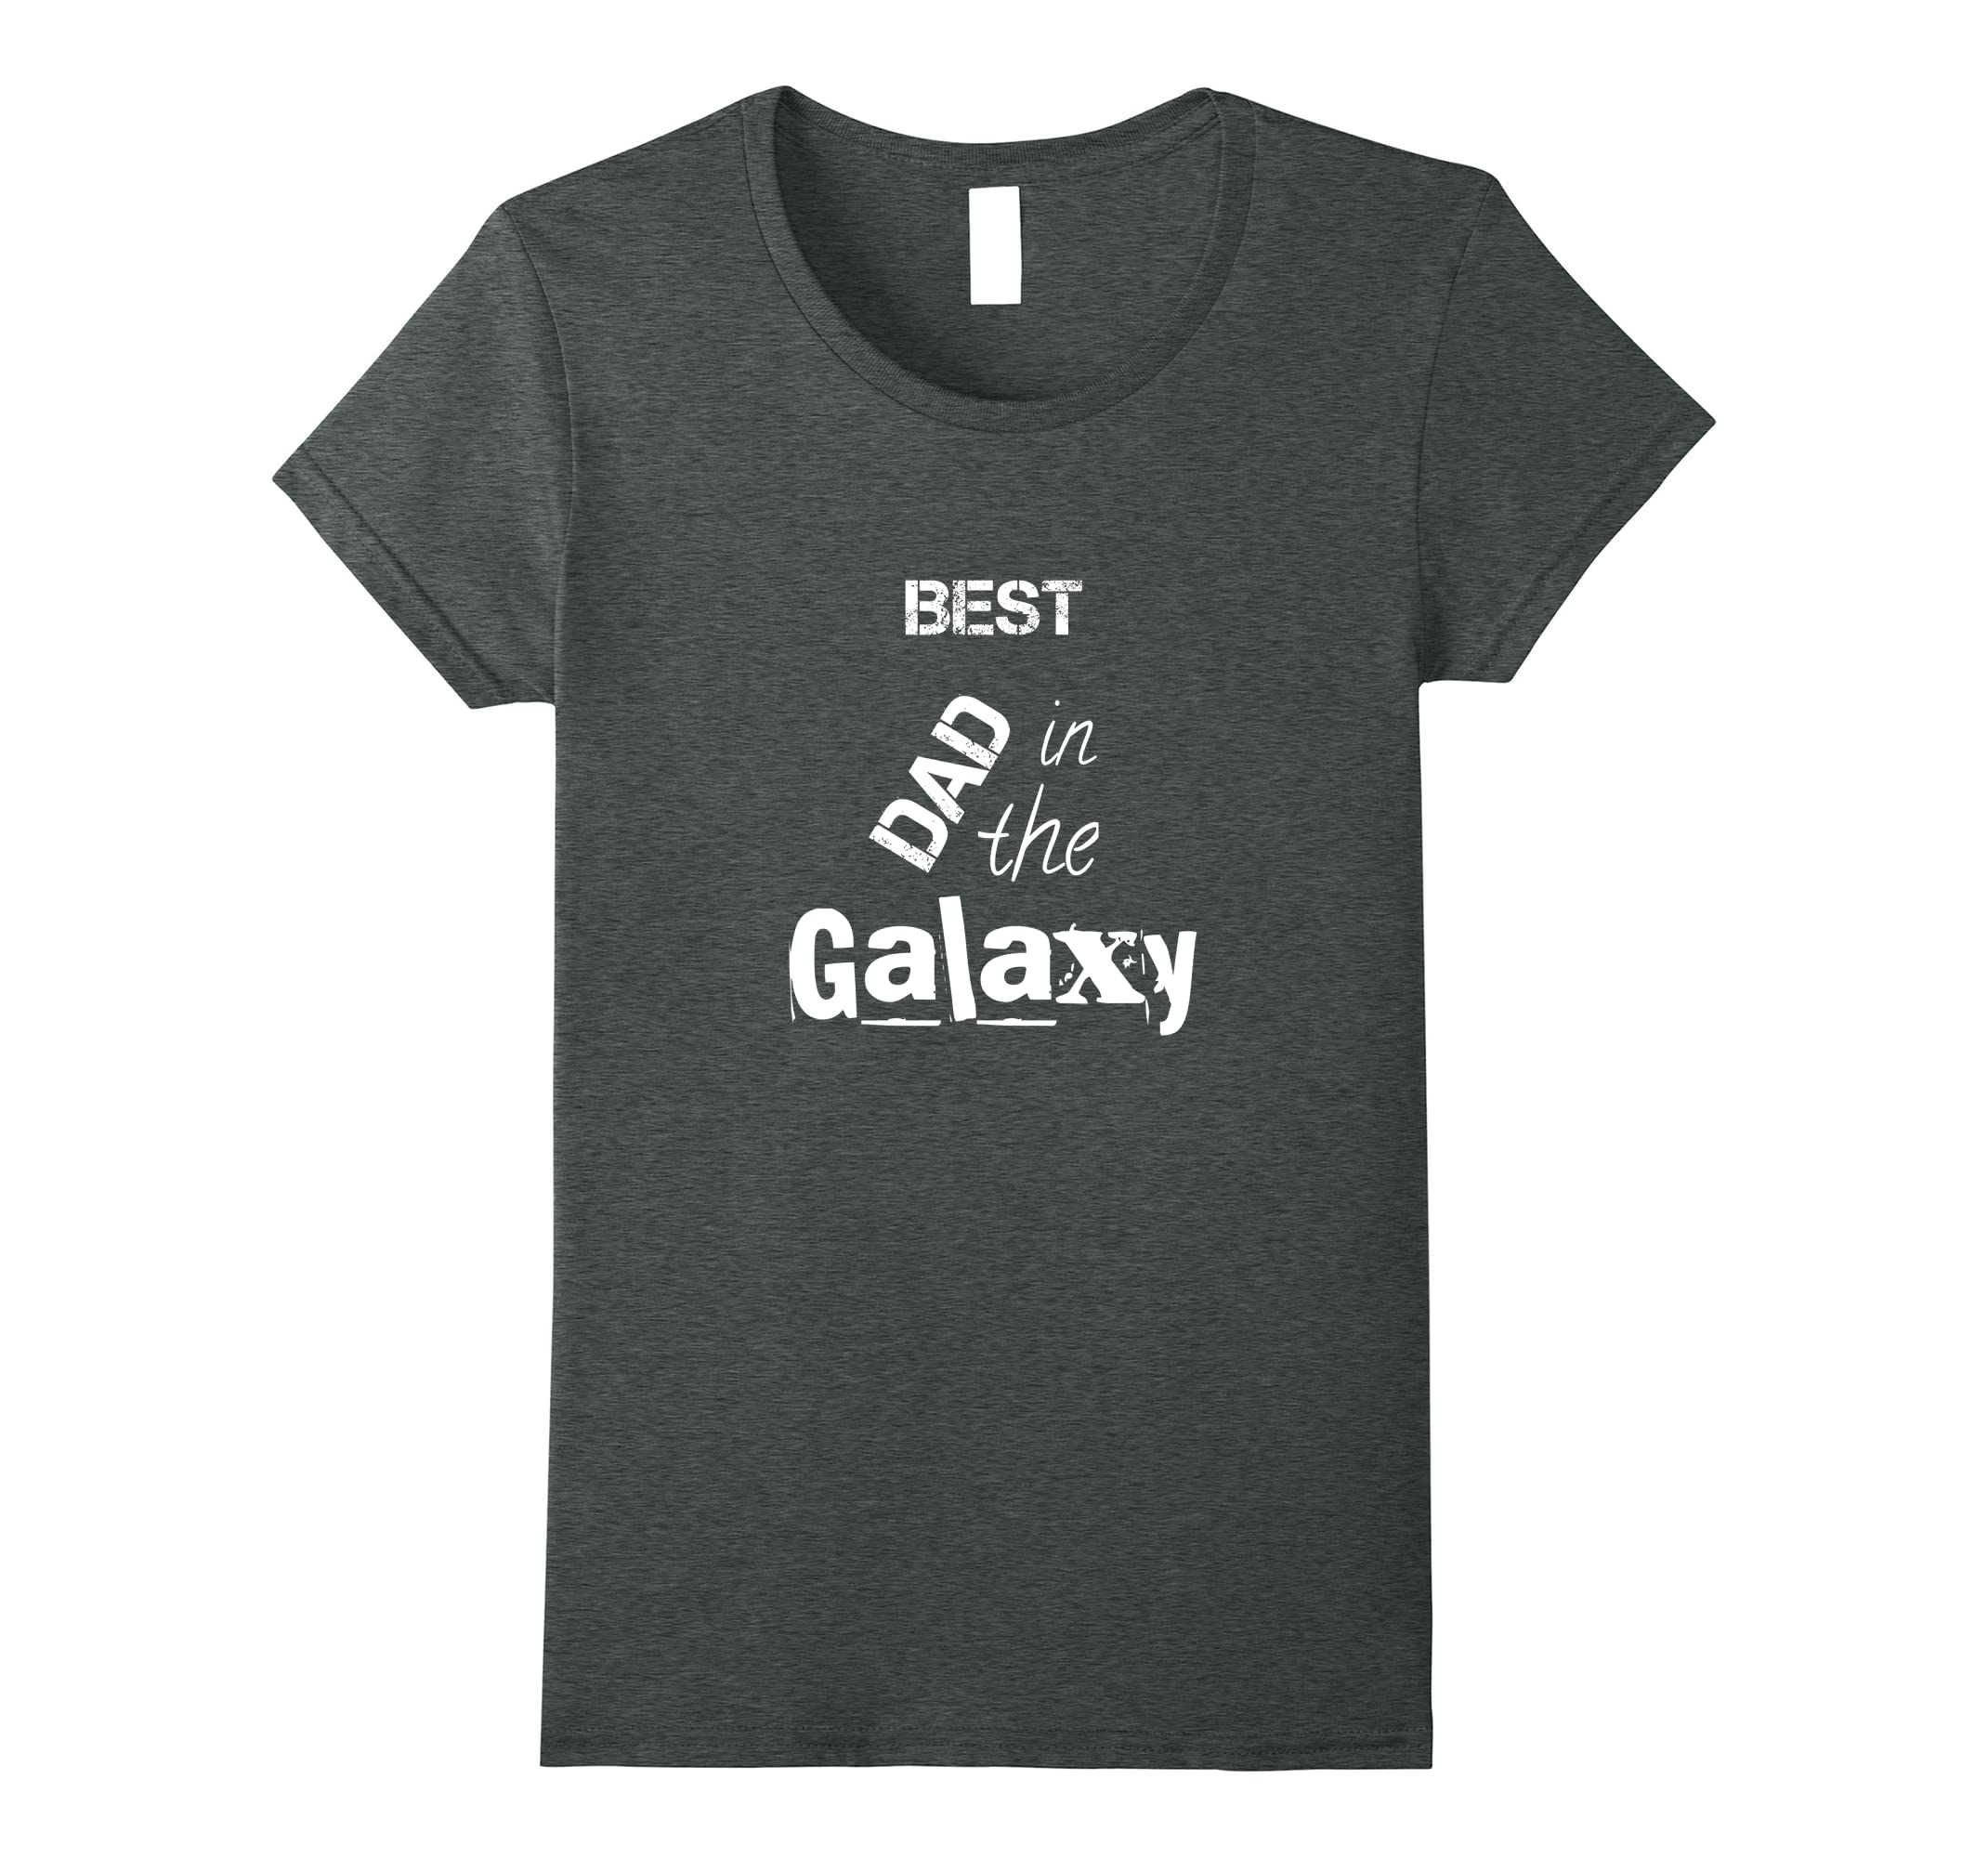 Best dad in the galaxy tee shirt